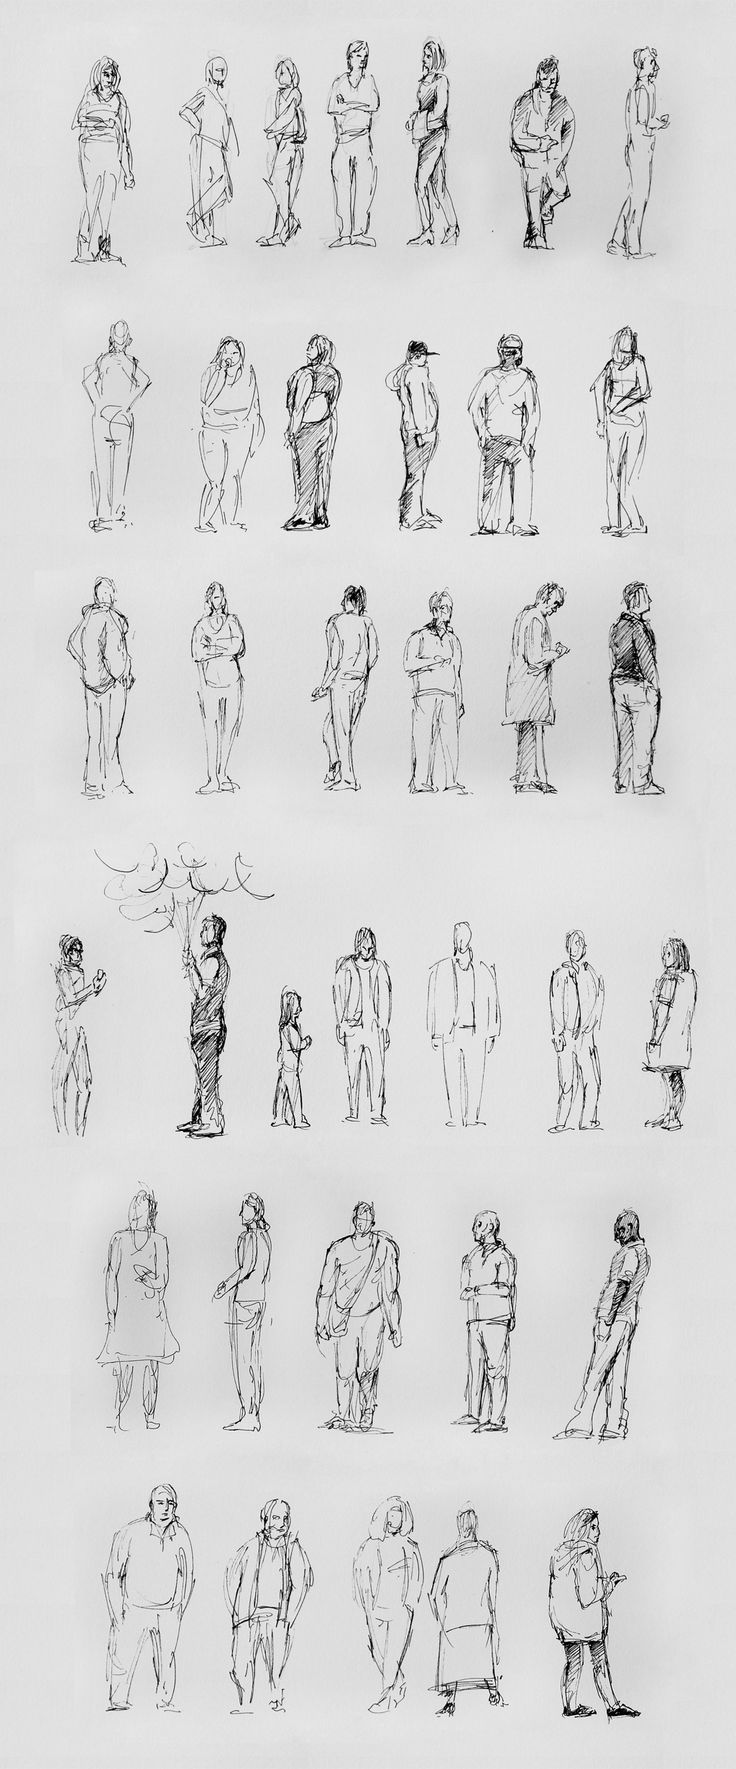 fast drawings of people at Montecasino